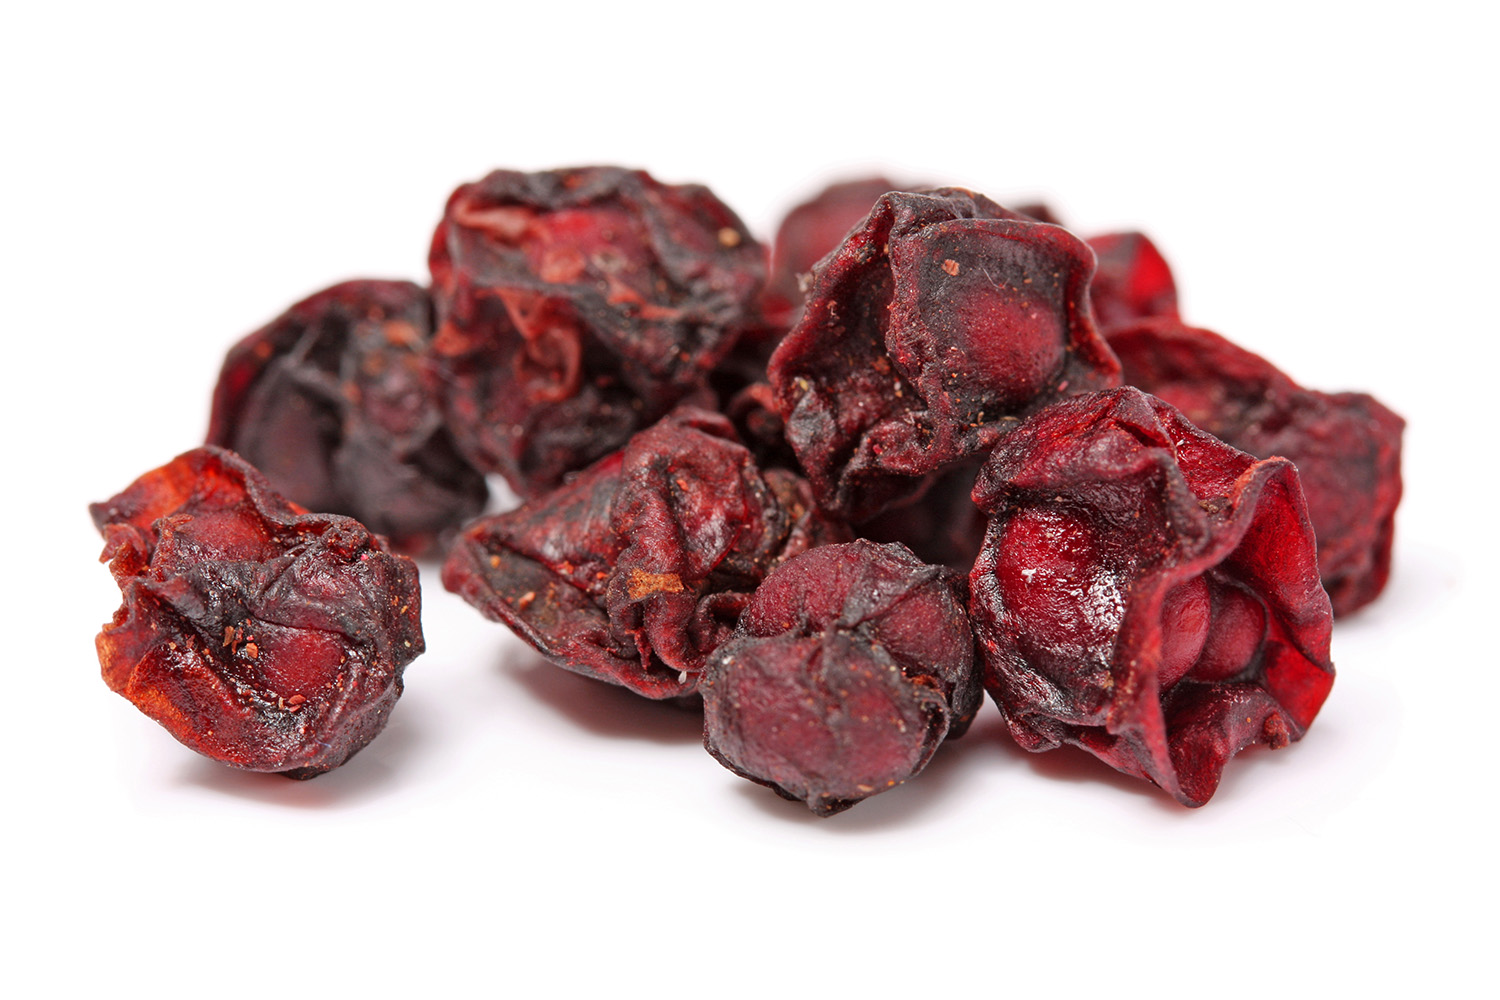 Schisandra Extract Herbal Medicine